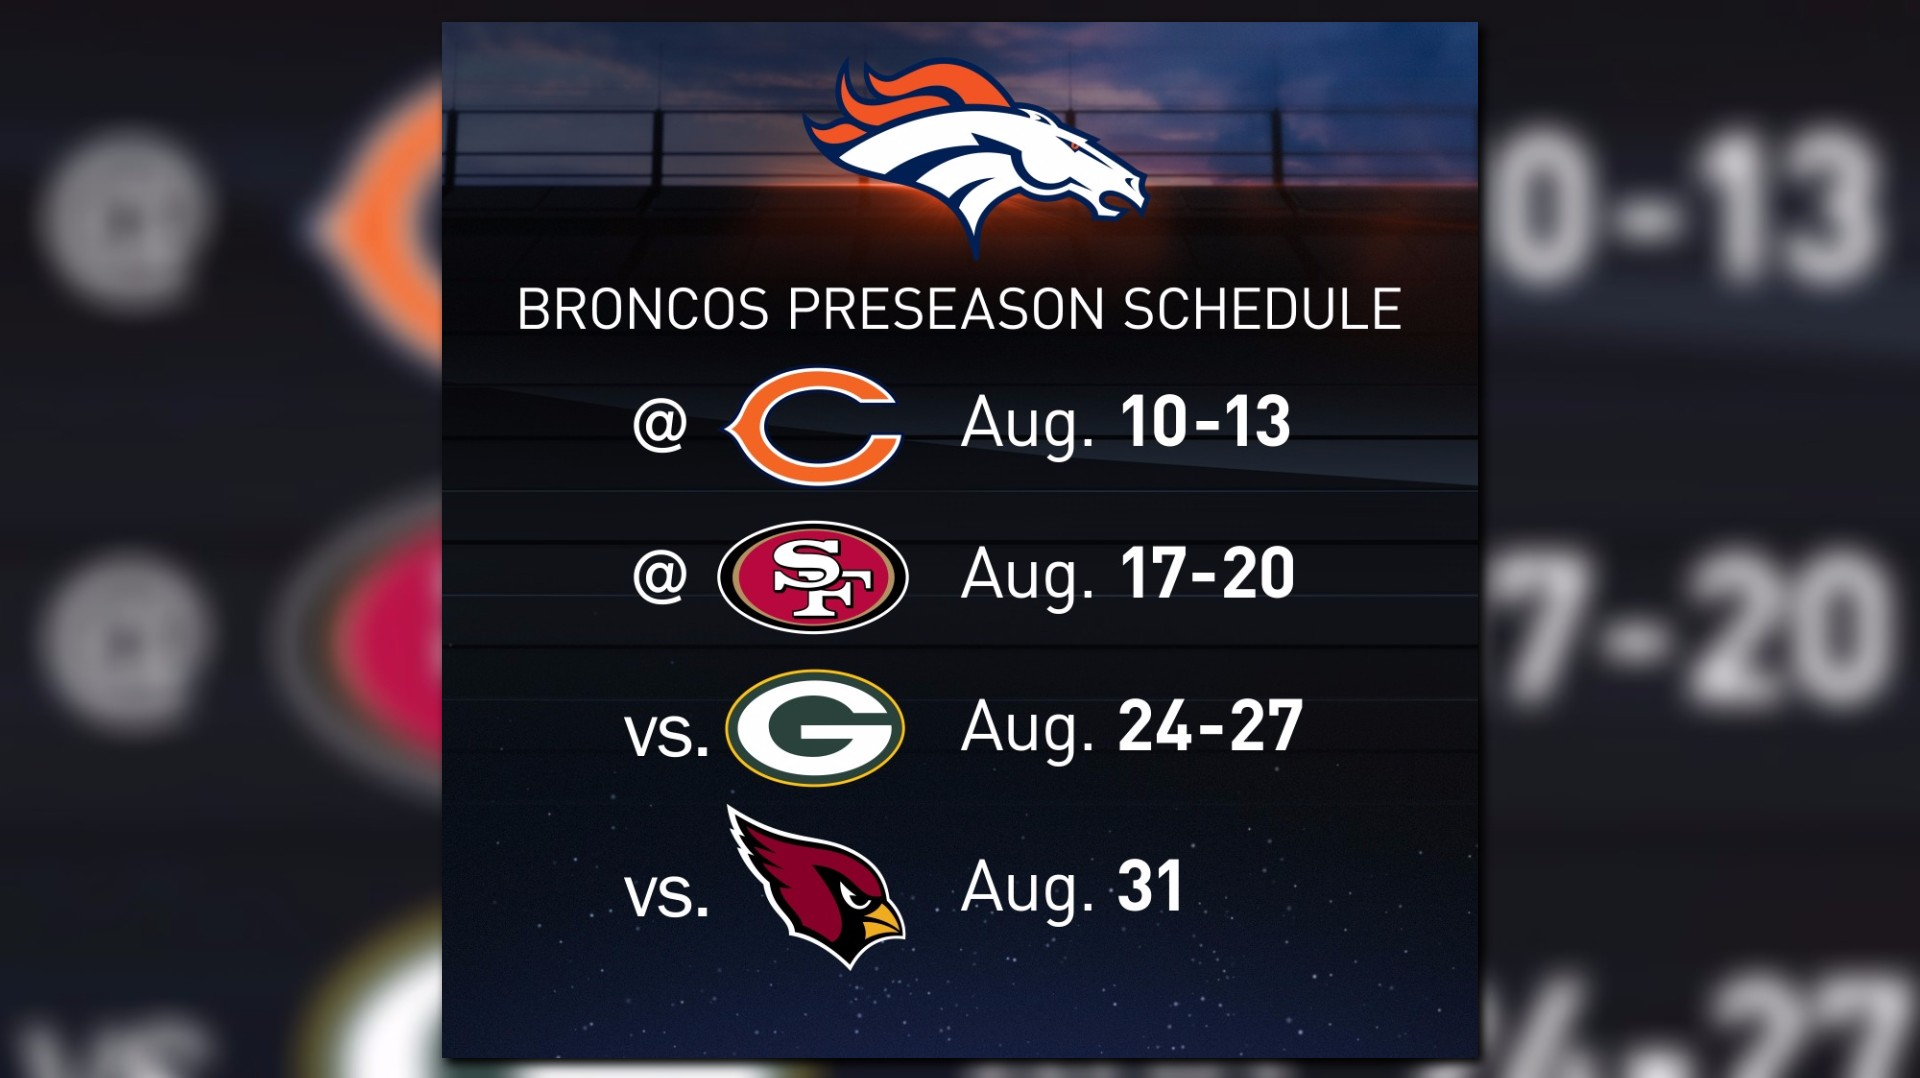 image about Denver Broncos Printable Schedule identified as Gameday! Denver Broncos Preseason Commences These days 8/10/17 @ 6PM